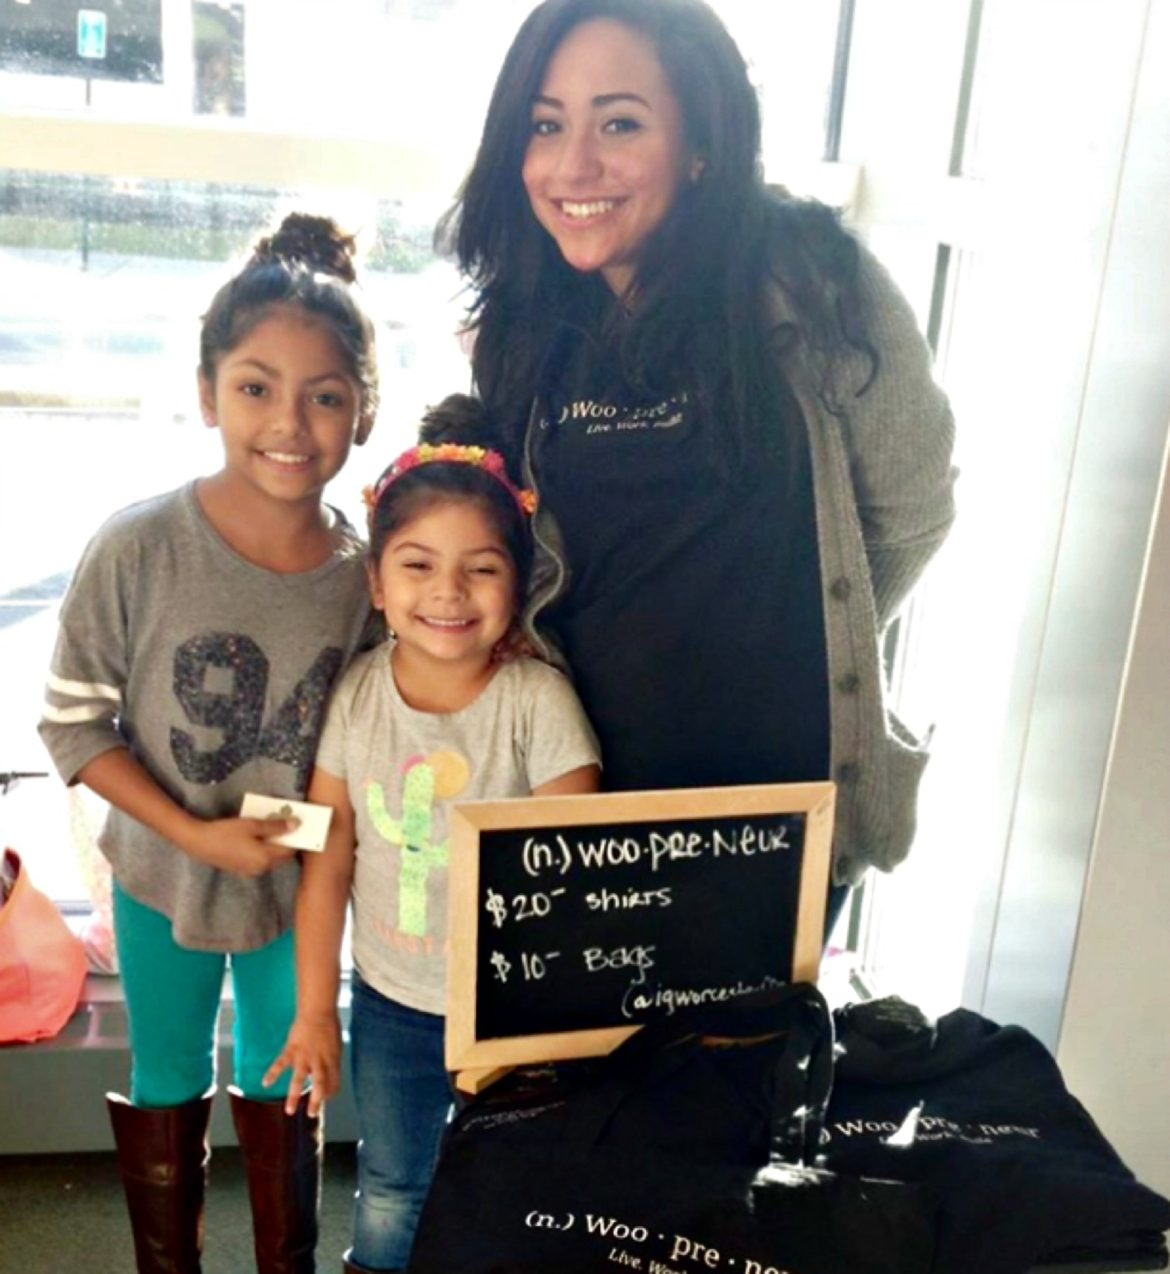 Giselle, with her daughters, Brooklyn, left, and Evian, push their new Woopreneur swag.